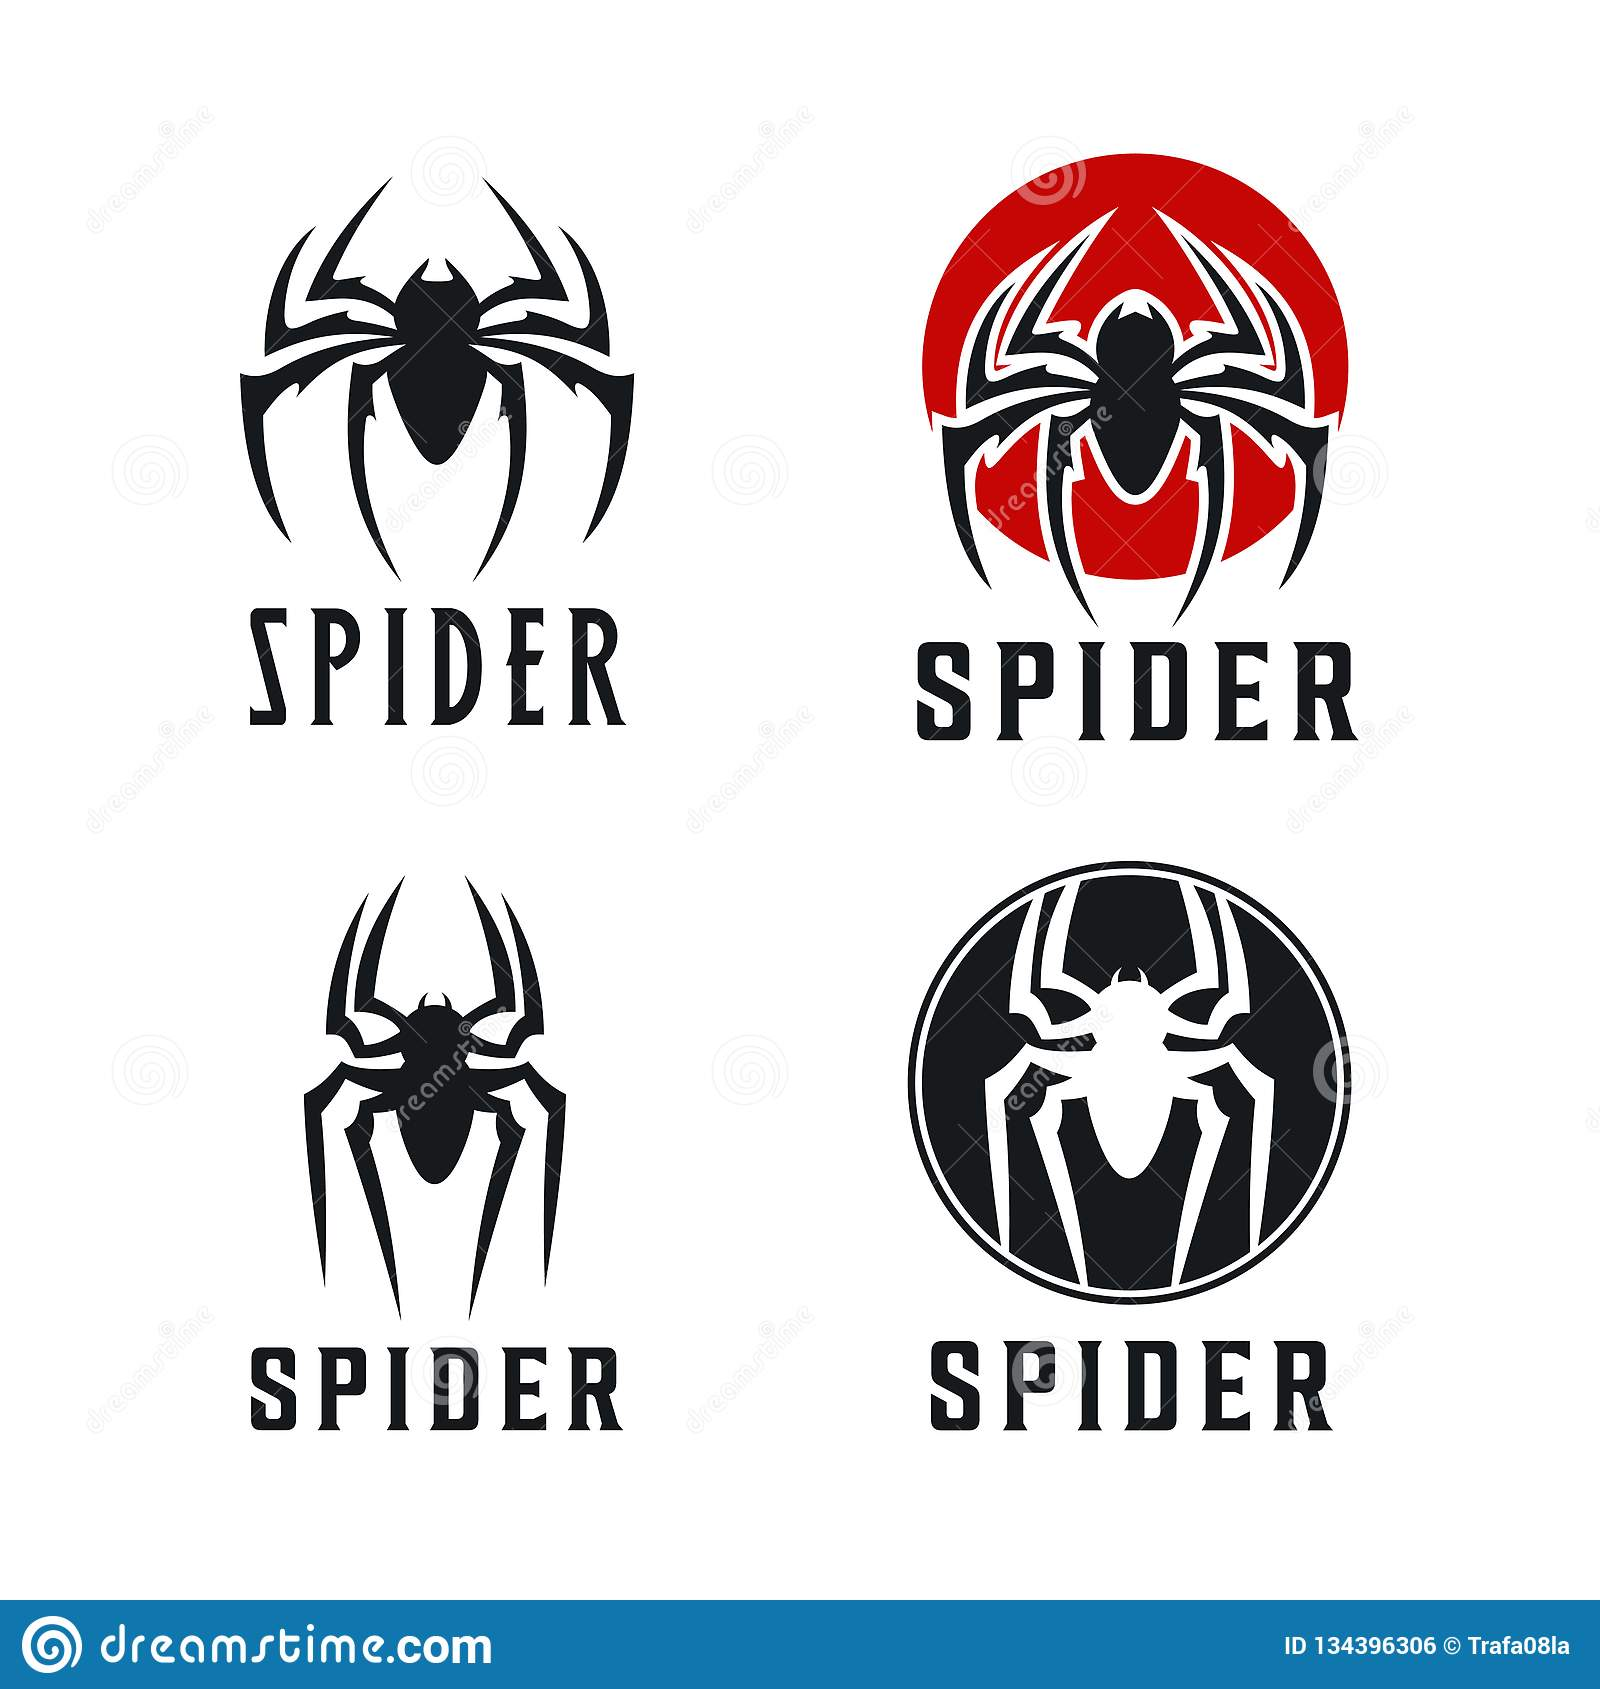 Spider Badge logo design inspiration Illustration